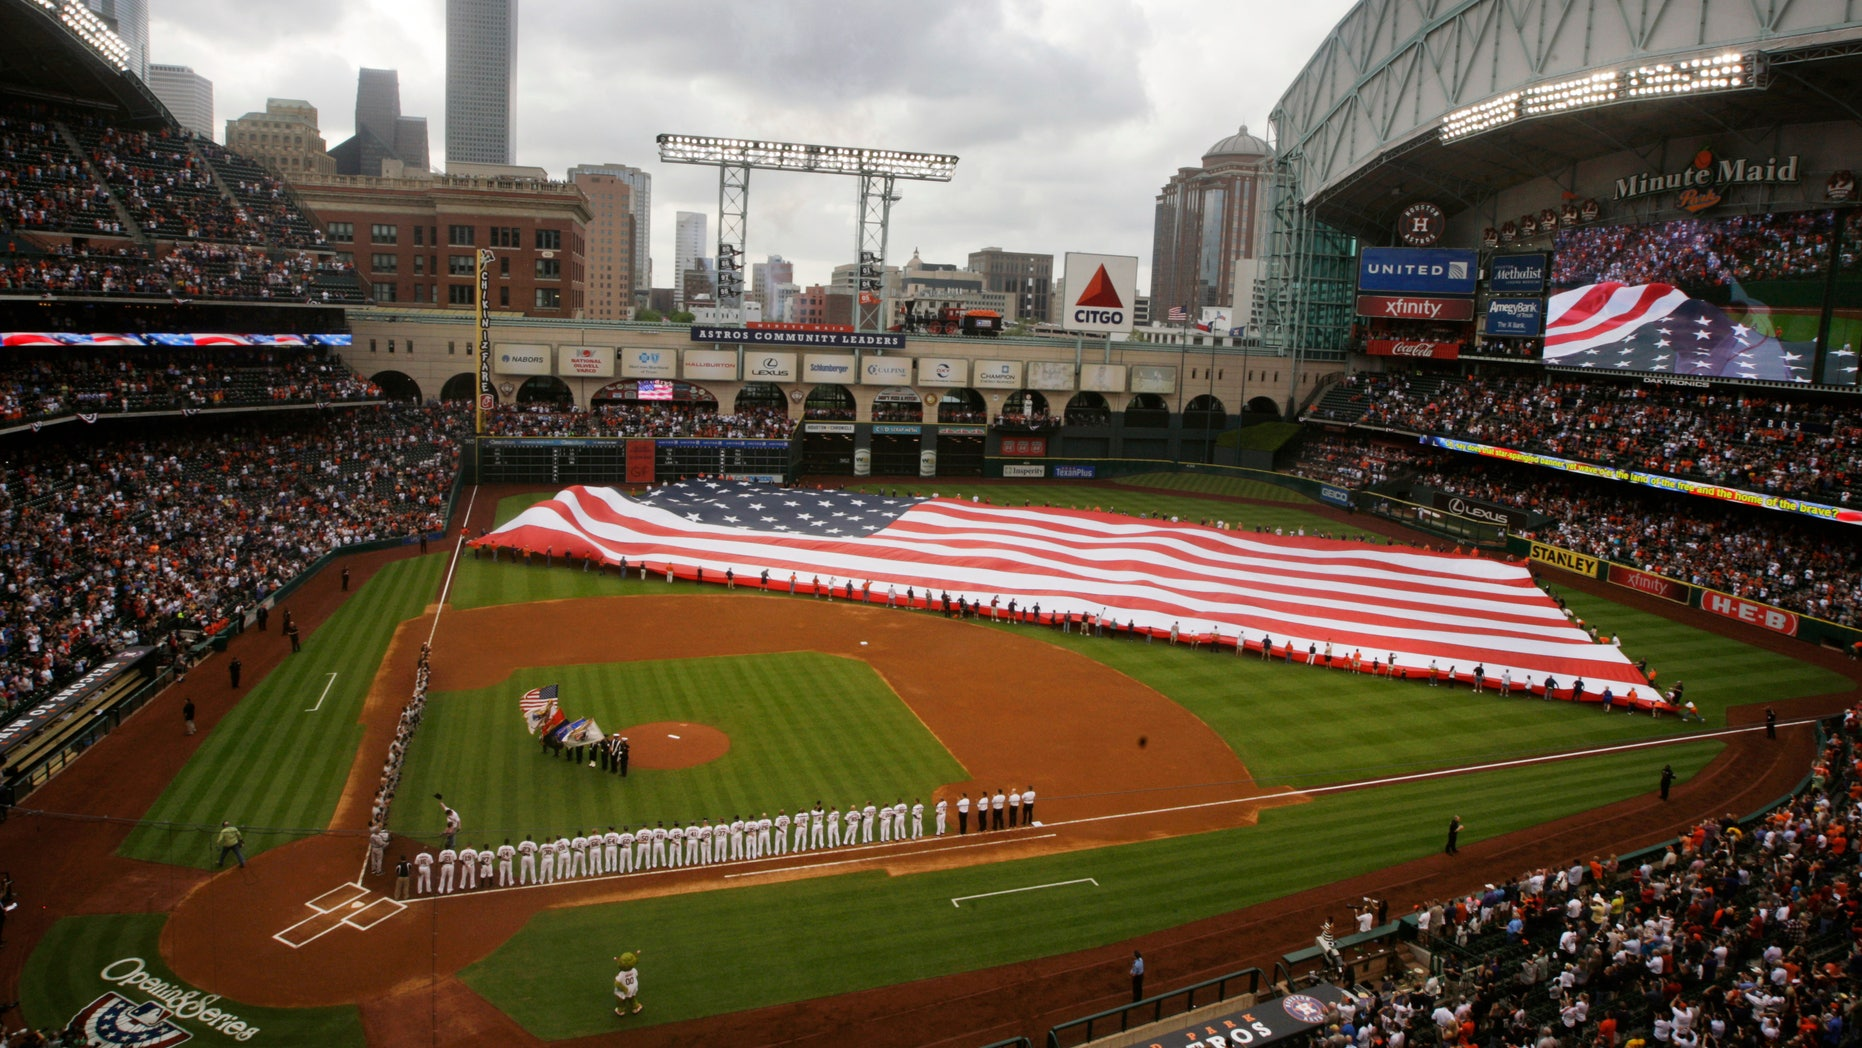 A U.S. flag is placed in the outfield for the national anthem before a baseball game between the Houston Astros and the New York Yankees, April 1, 2014, in Houston.